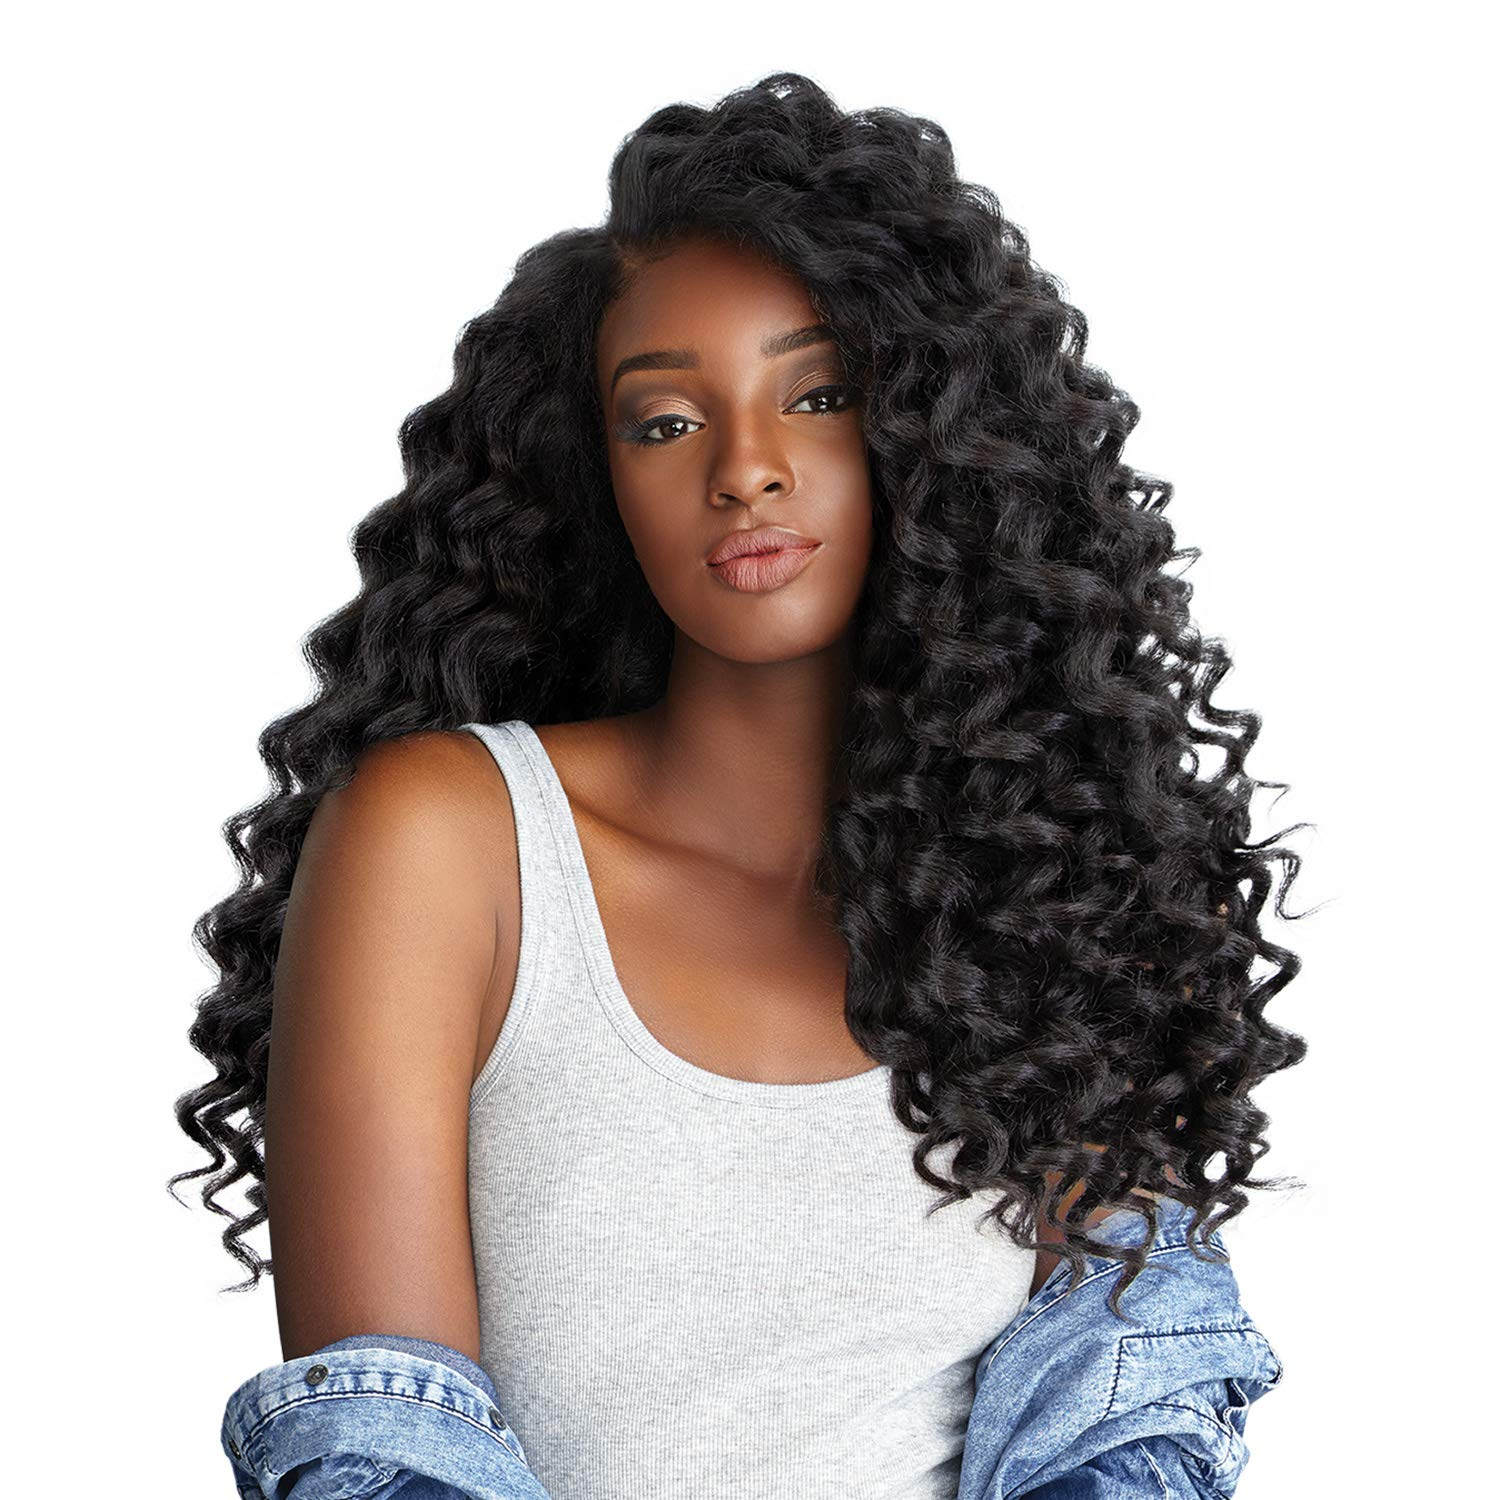 Sensationnel Curls OFFicial mail order Price reduction Kinks Co Empress Wig lace ONE 1B WILD